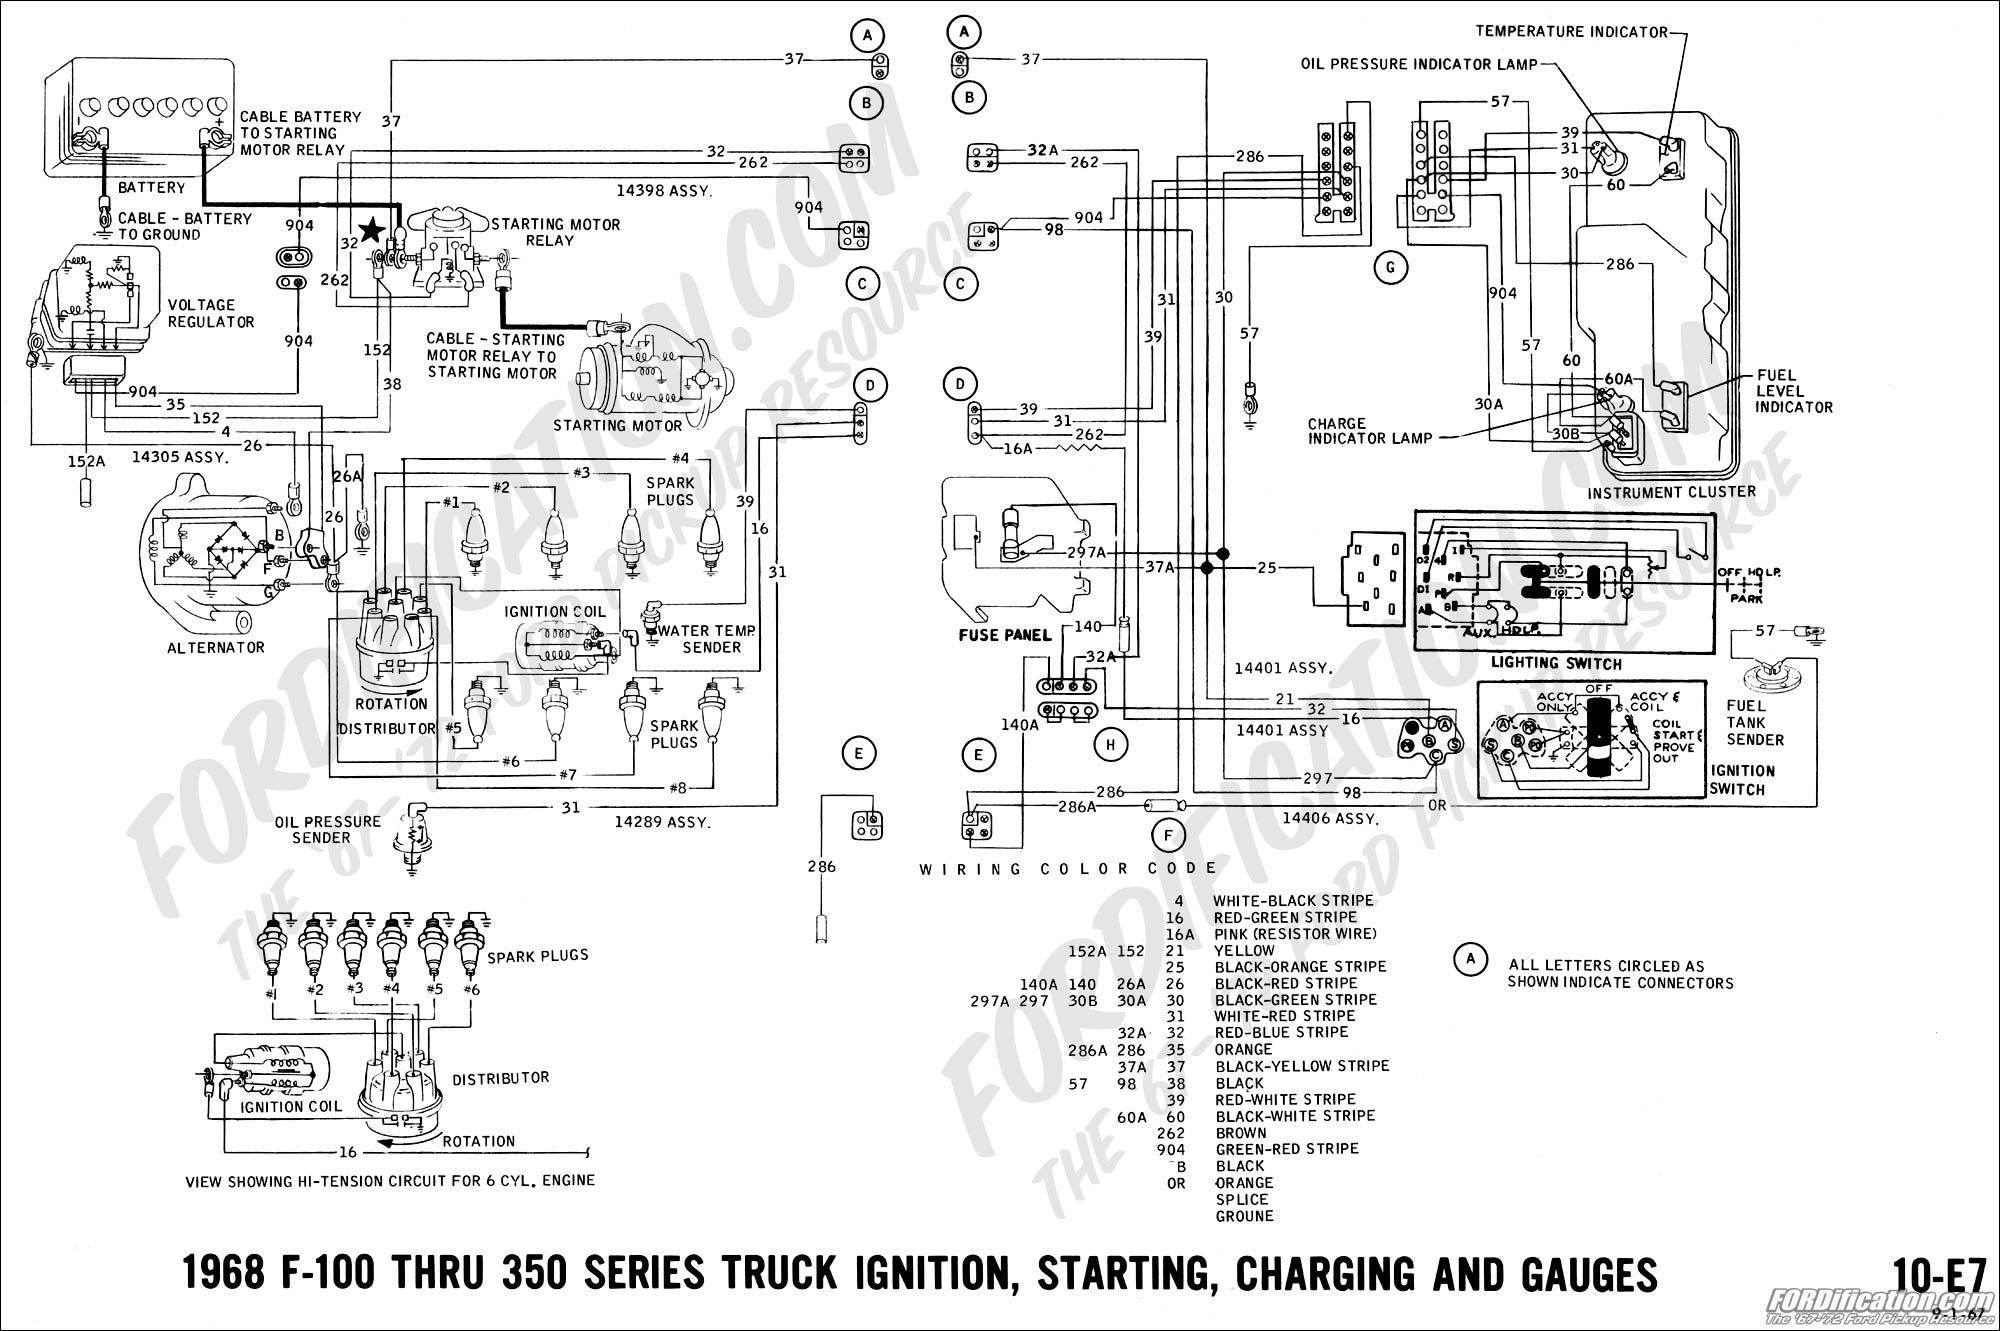 68 09 ford truck technical drawings and schematics section h wiring 1999 F150 Radio Wiring Diagram at gsmx.co